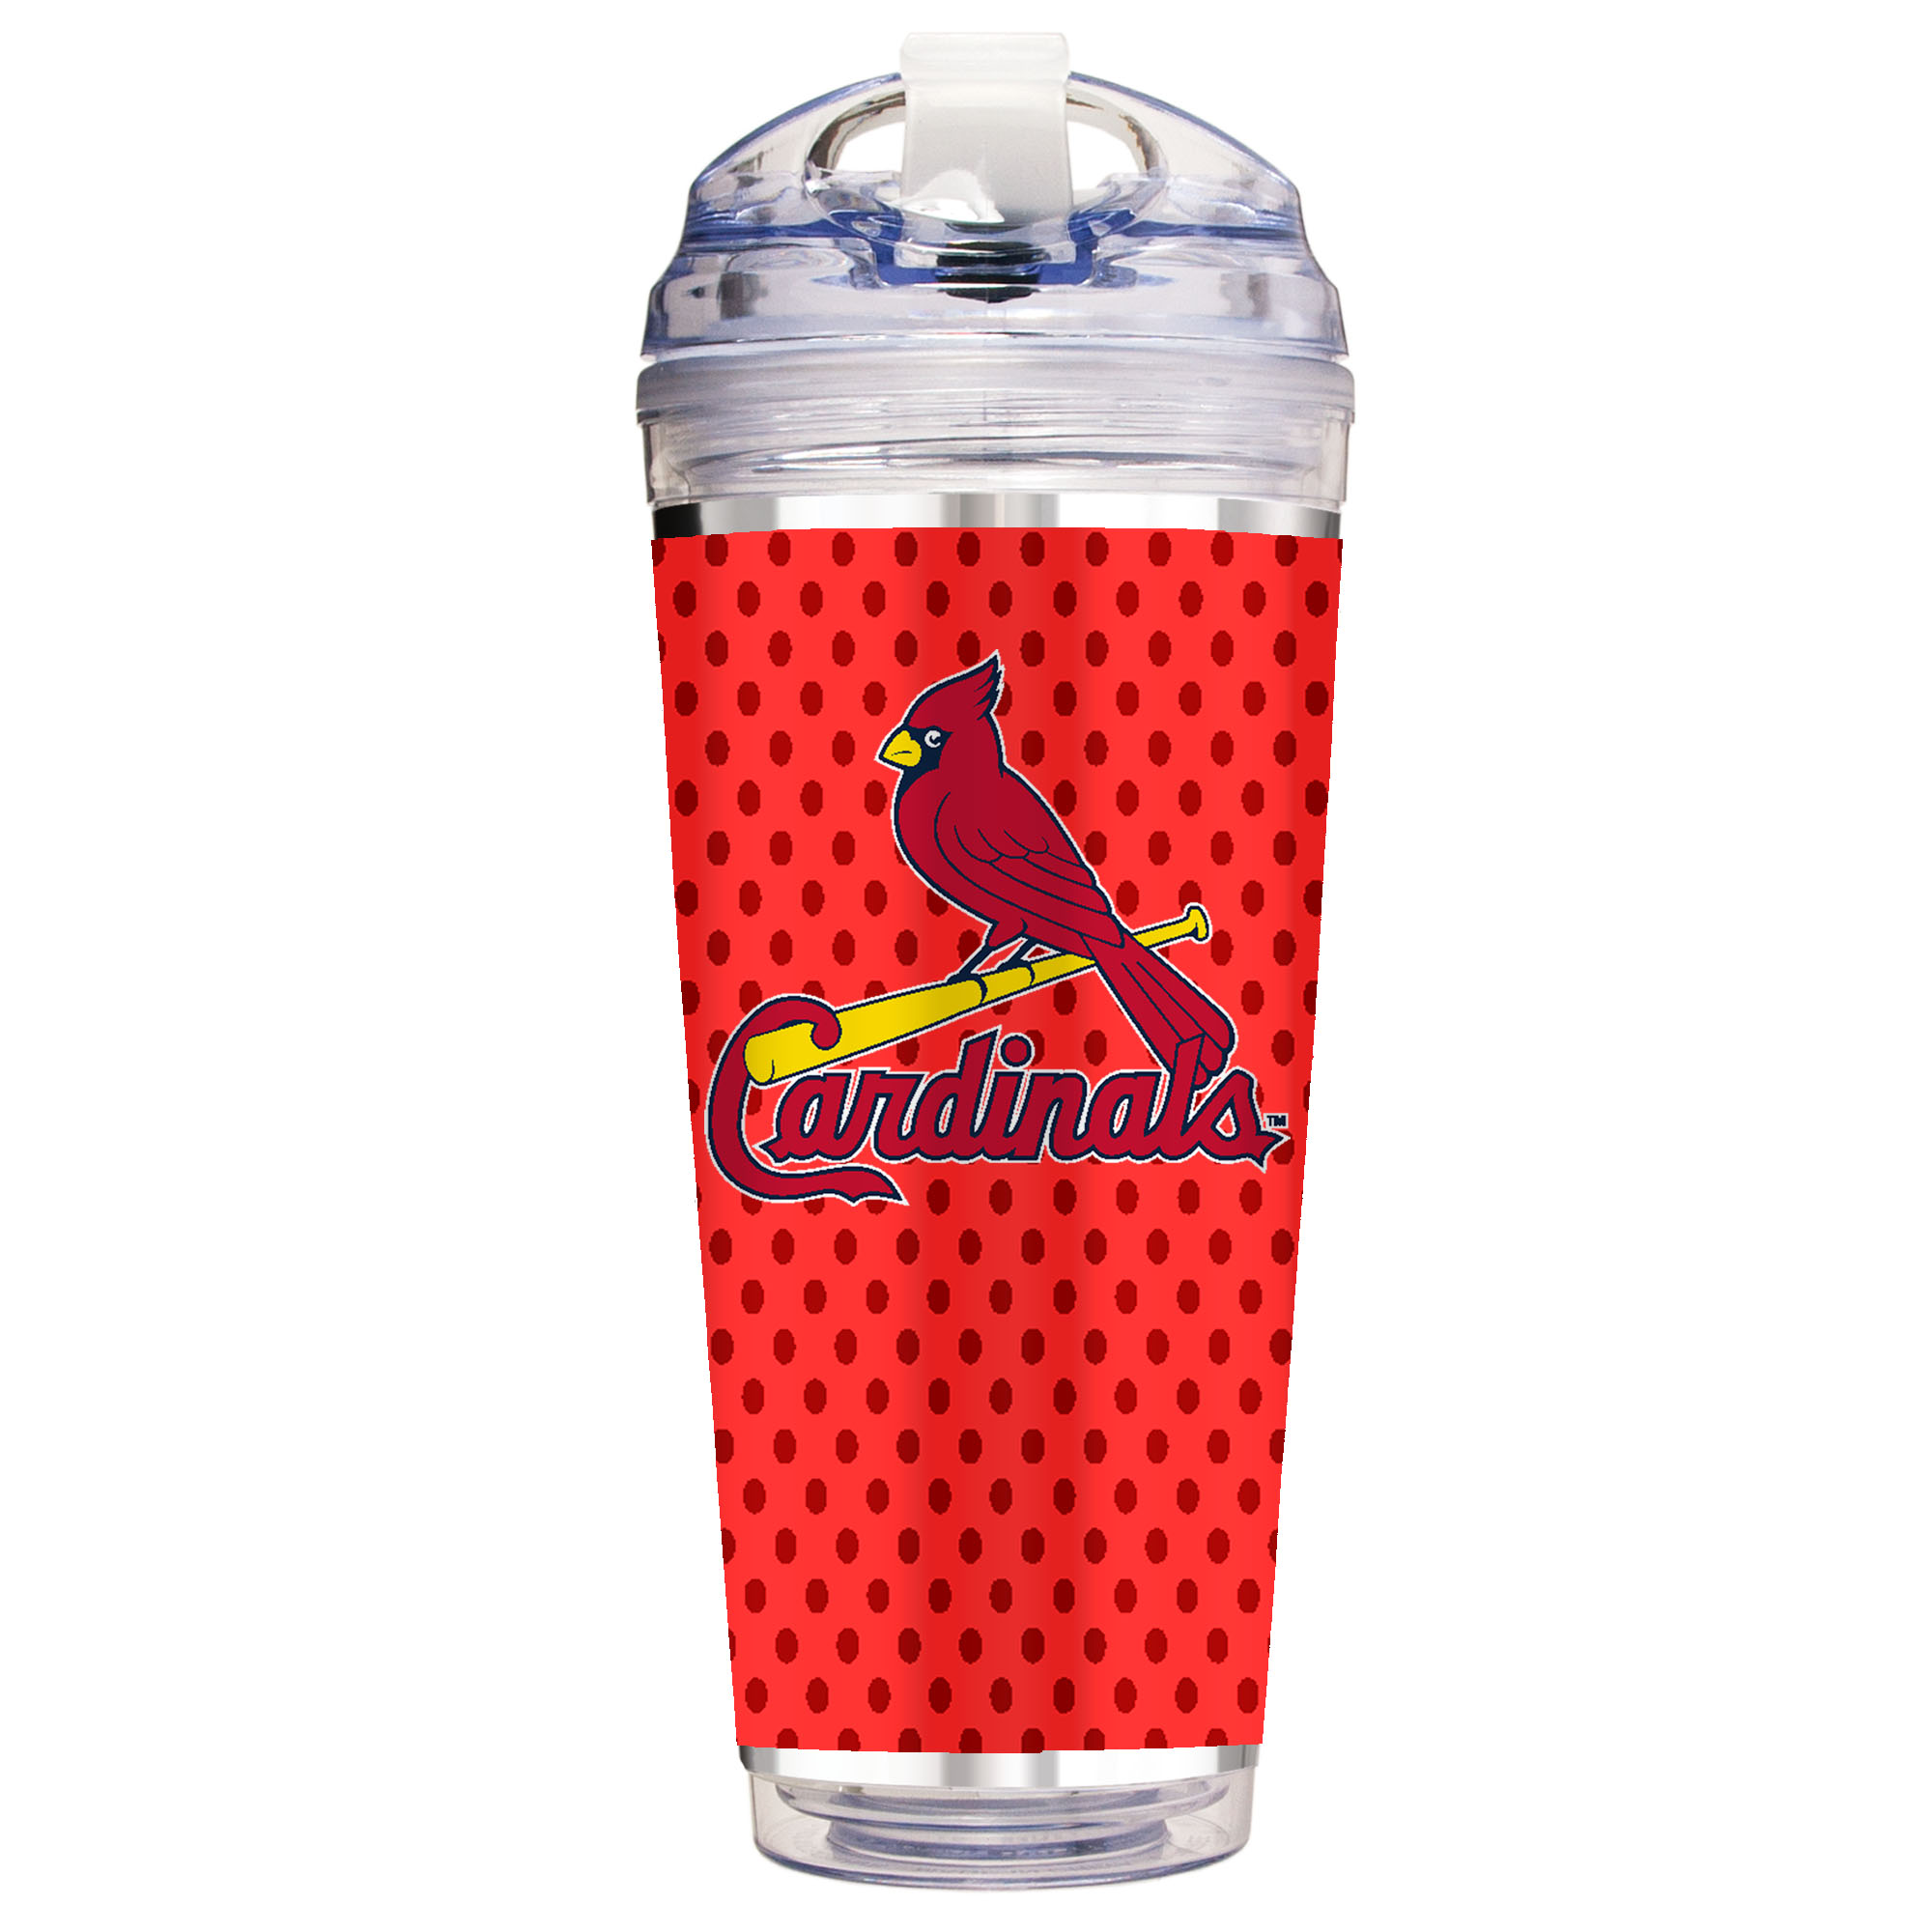 St. Louis Cardinals 2018 Players' Weekend 24oz. Acrylic Tumbler - No Size